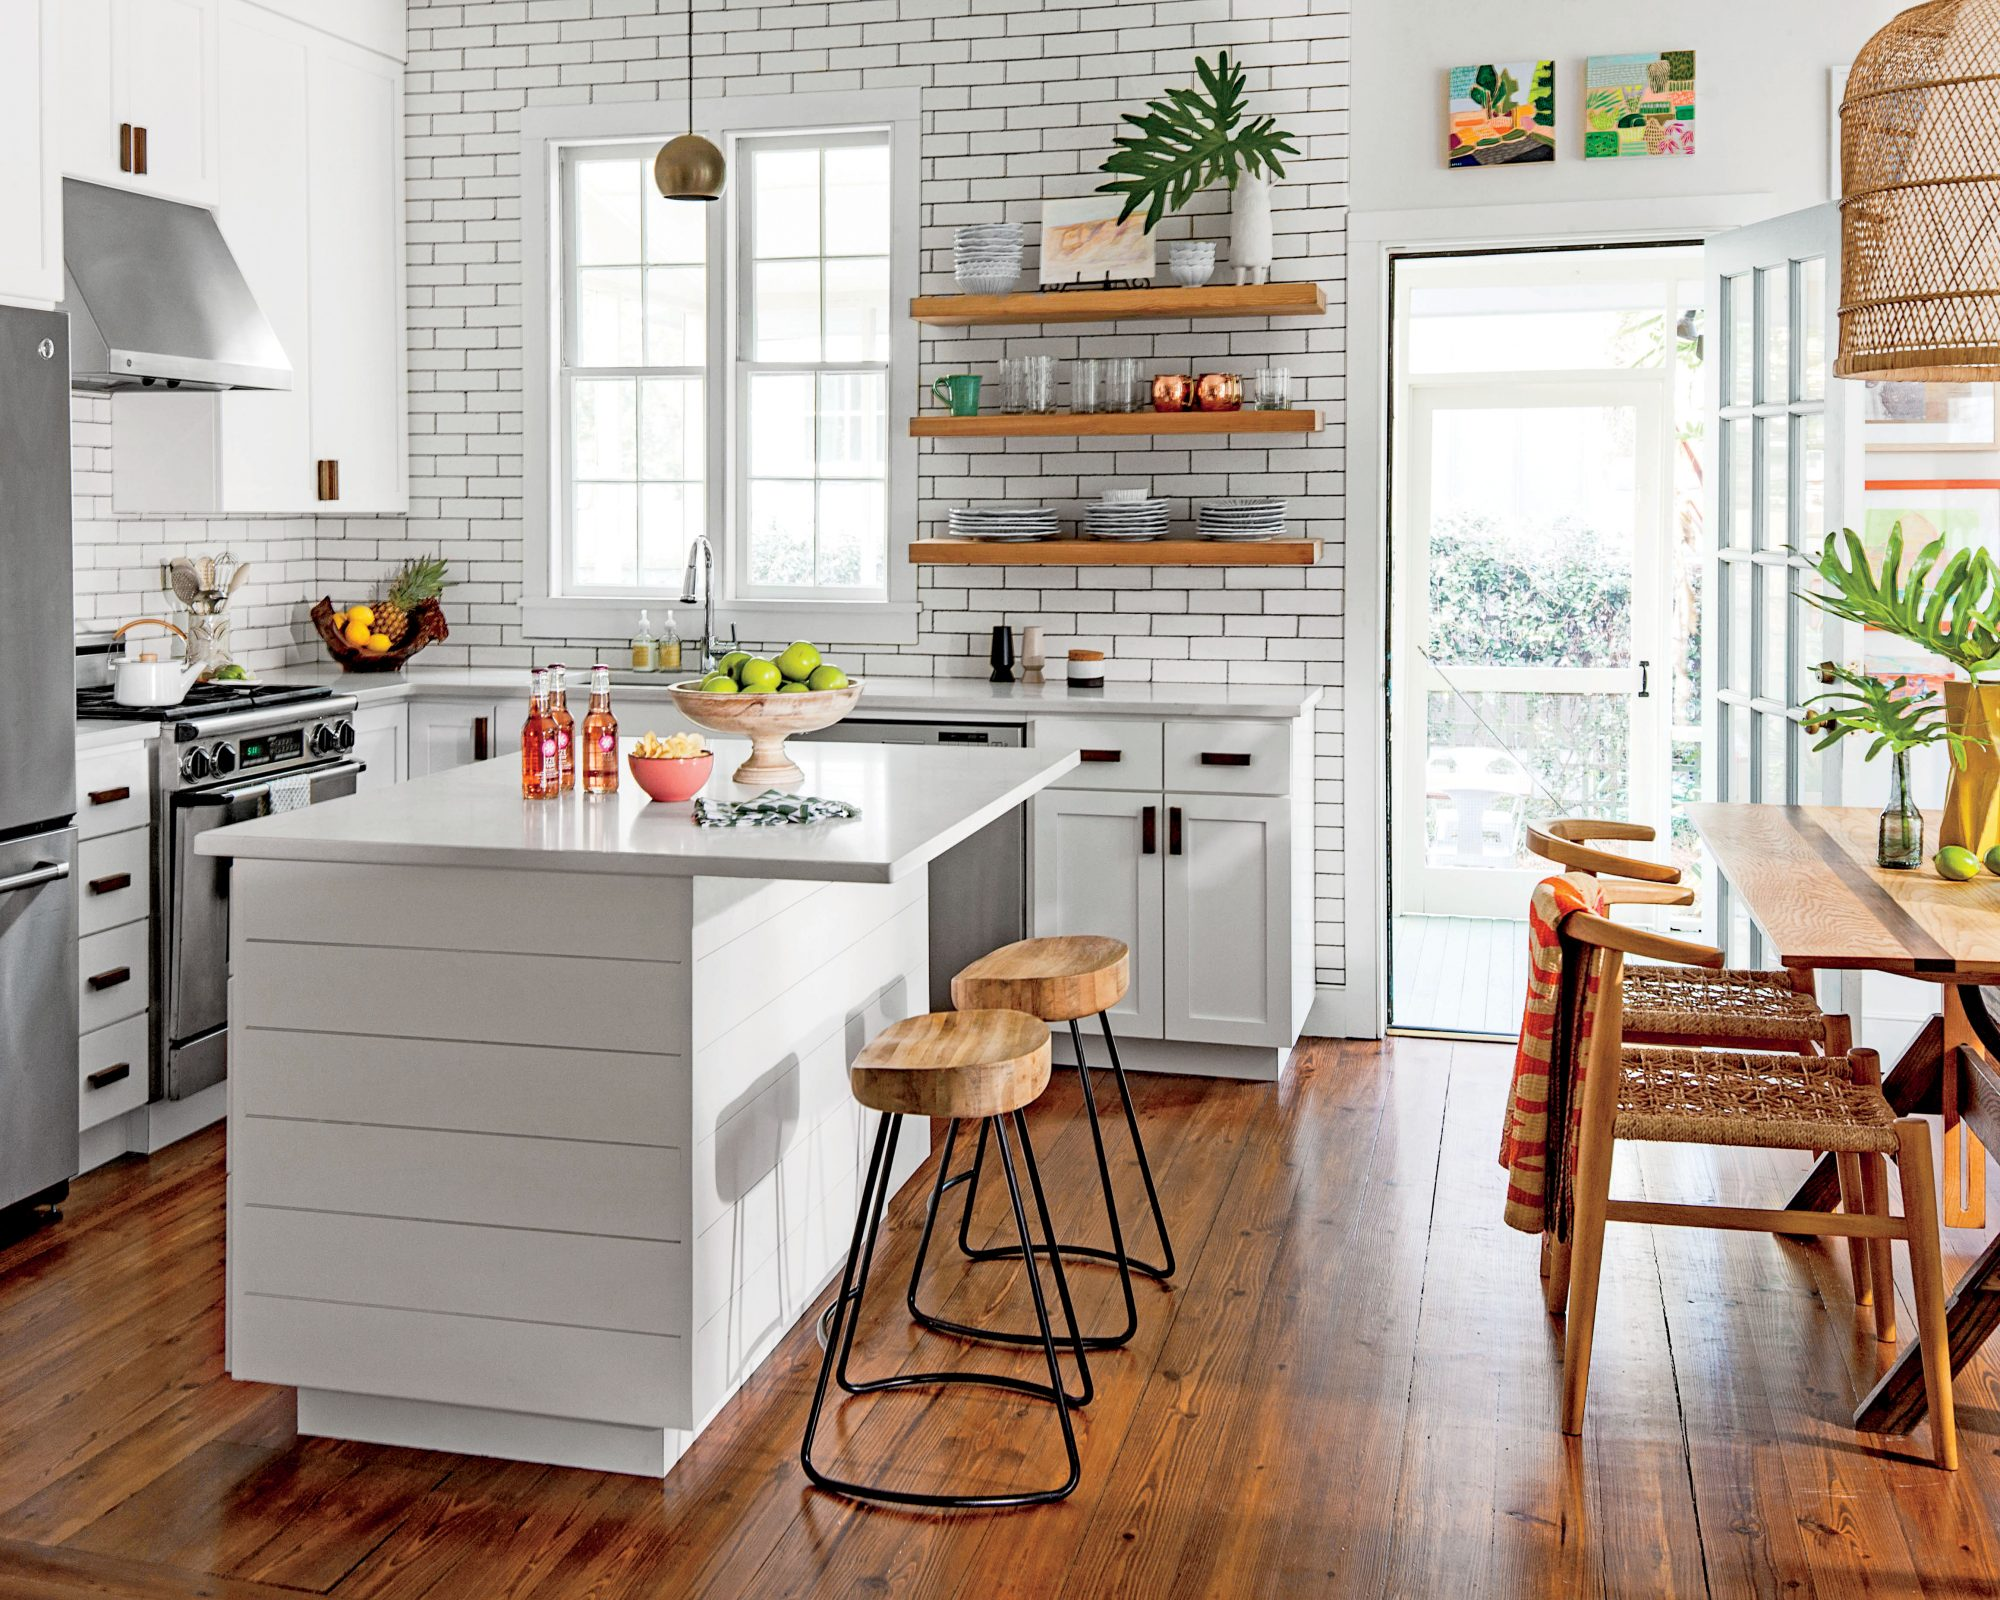 RX_1611_Tiny Kitchens_Tiny Kitchen Island with Shiplap Siding